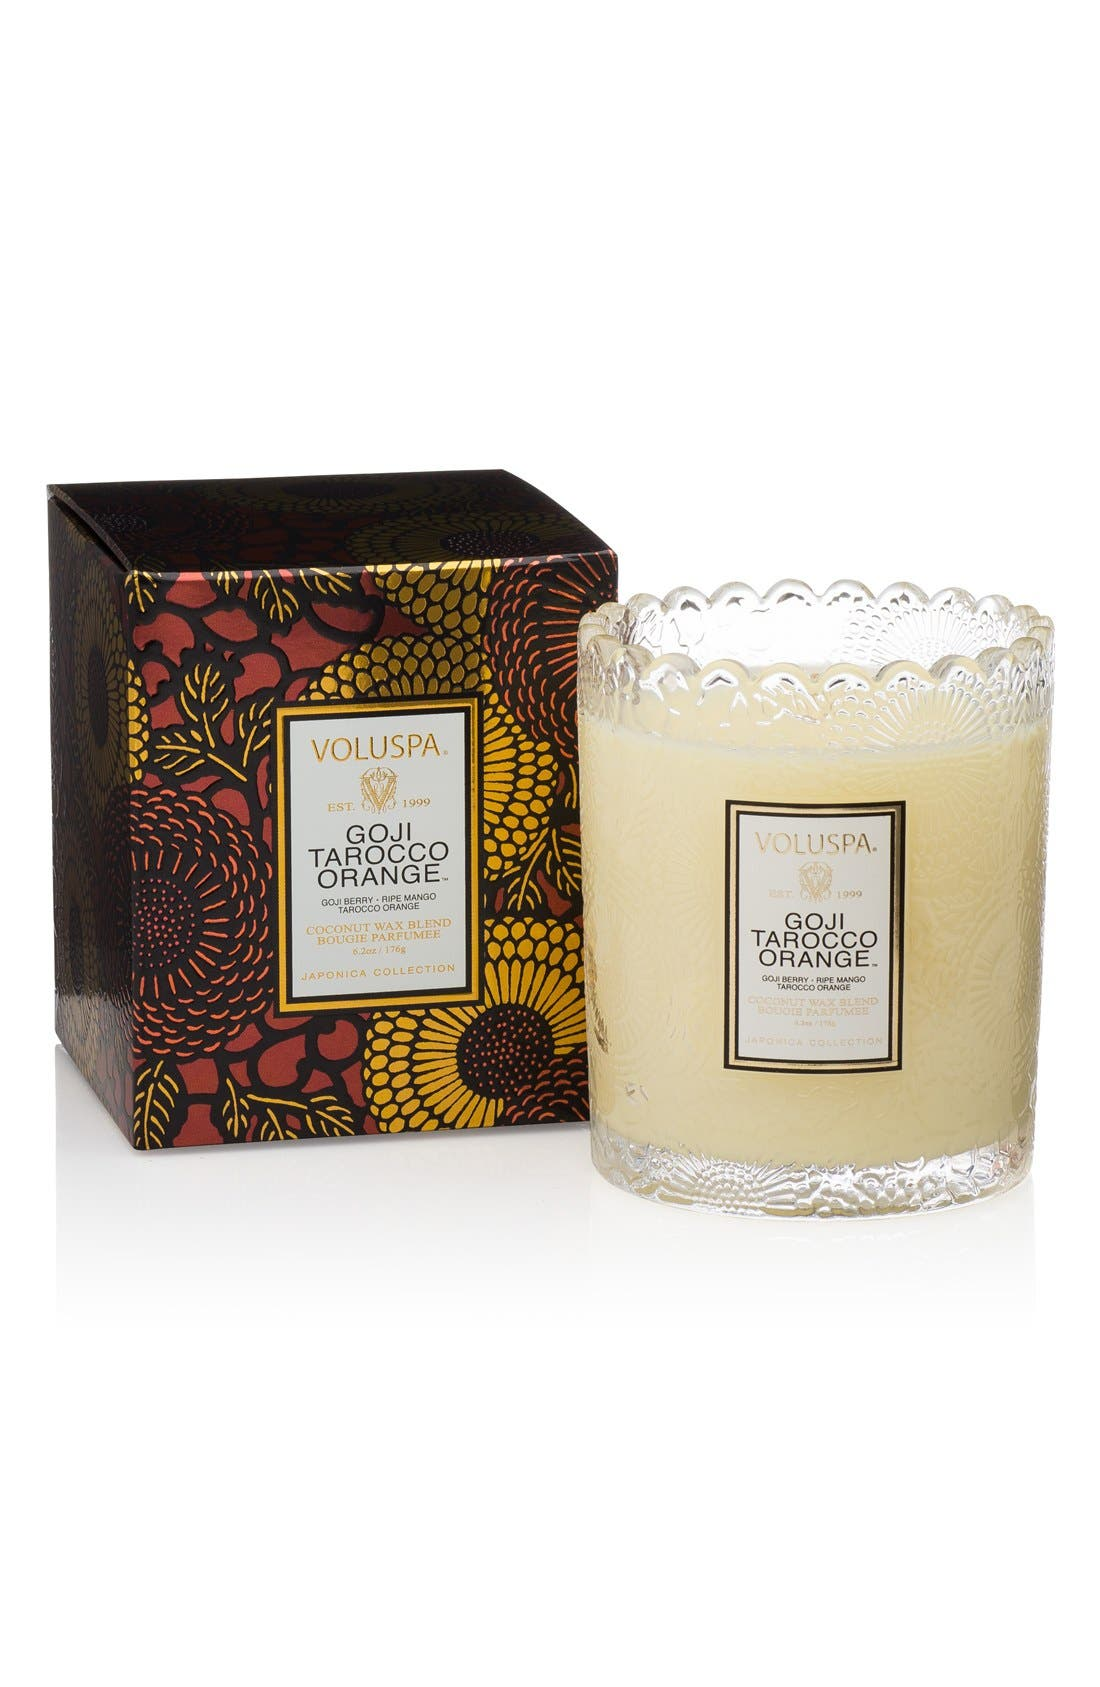 VOLUSPA Japonica Goji Tarocco Orange Boxed Scalloped Candle